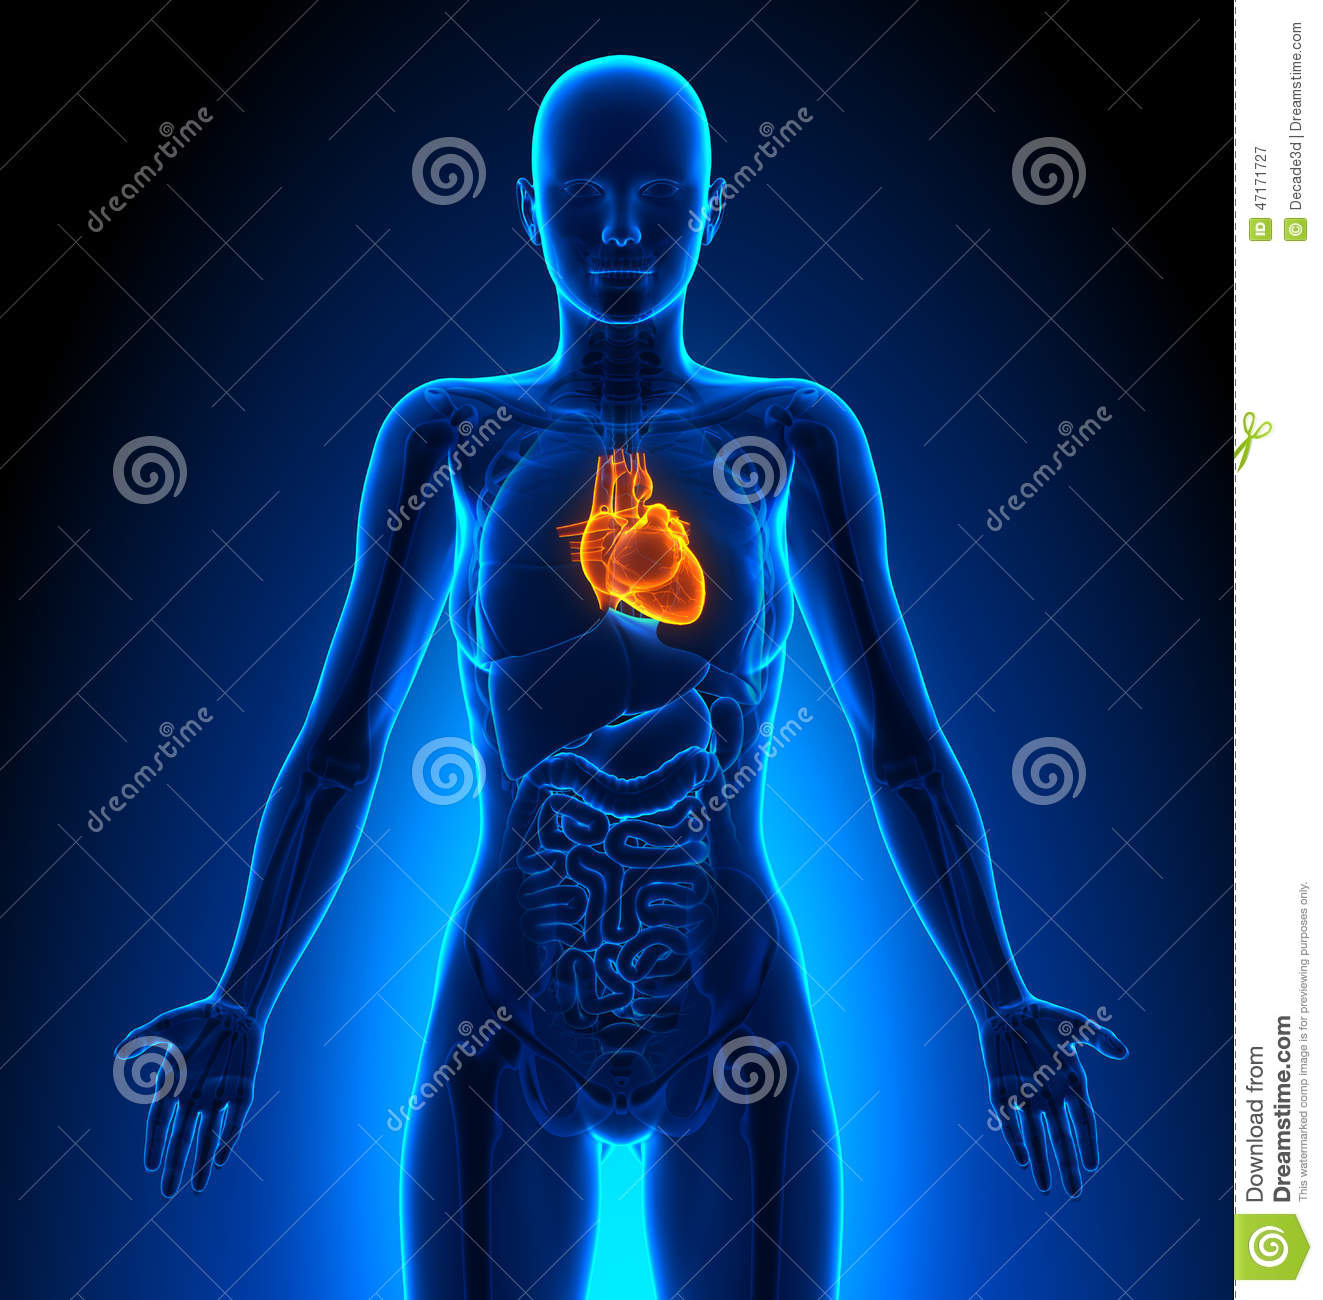 Heart Female Organs Human Anatomy Stock Illustration